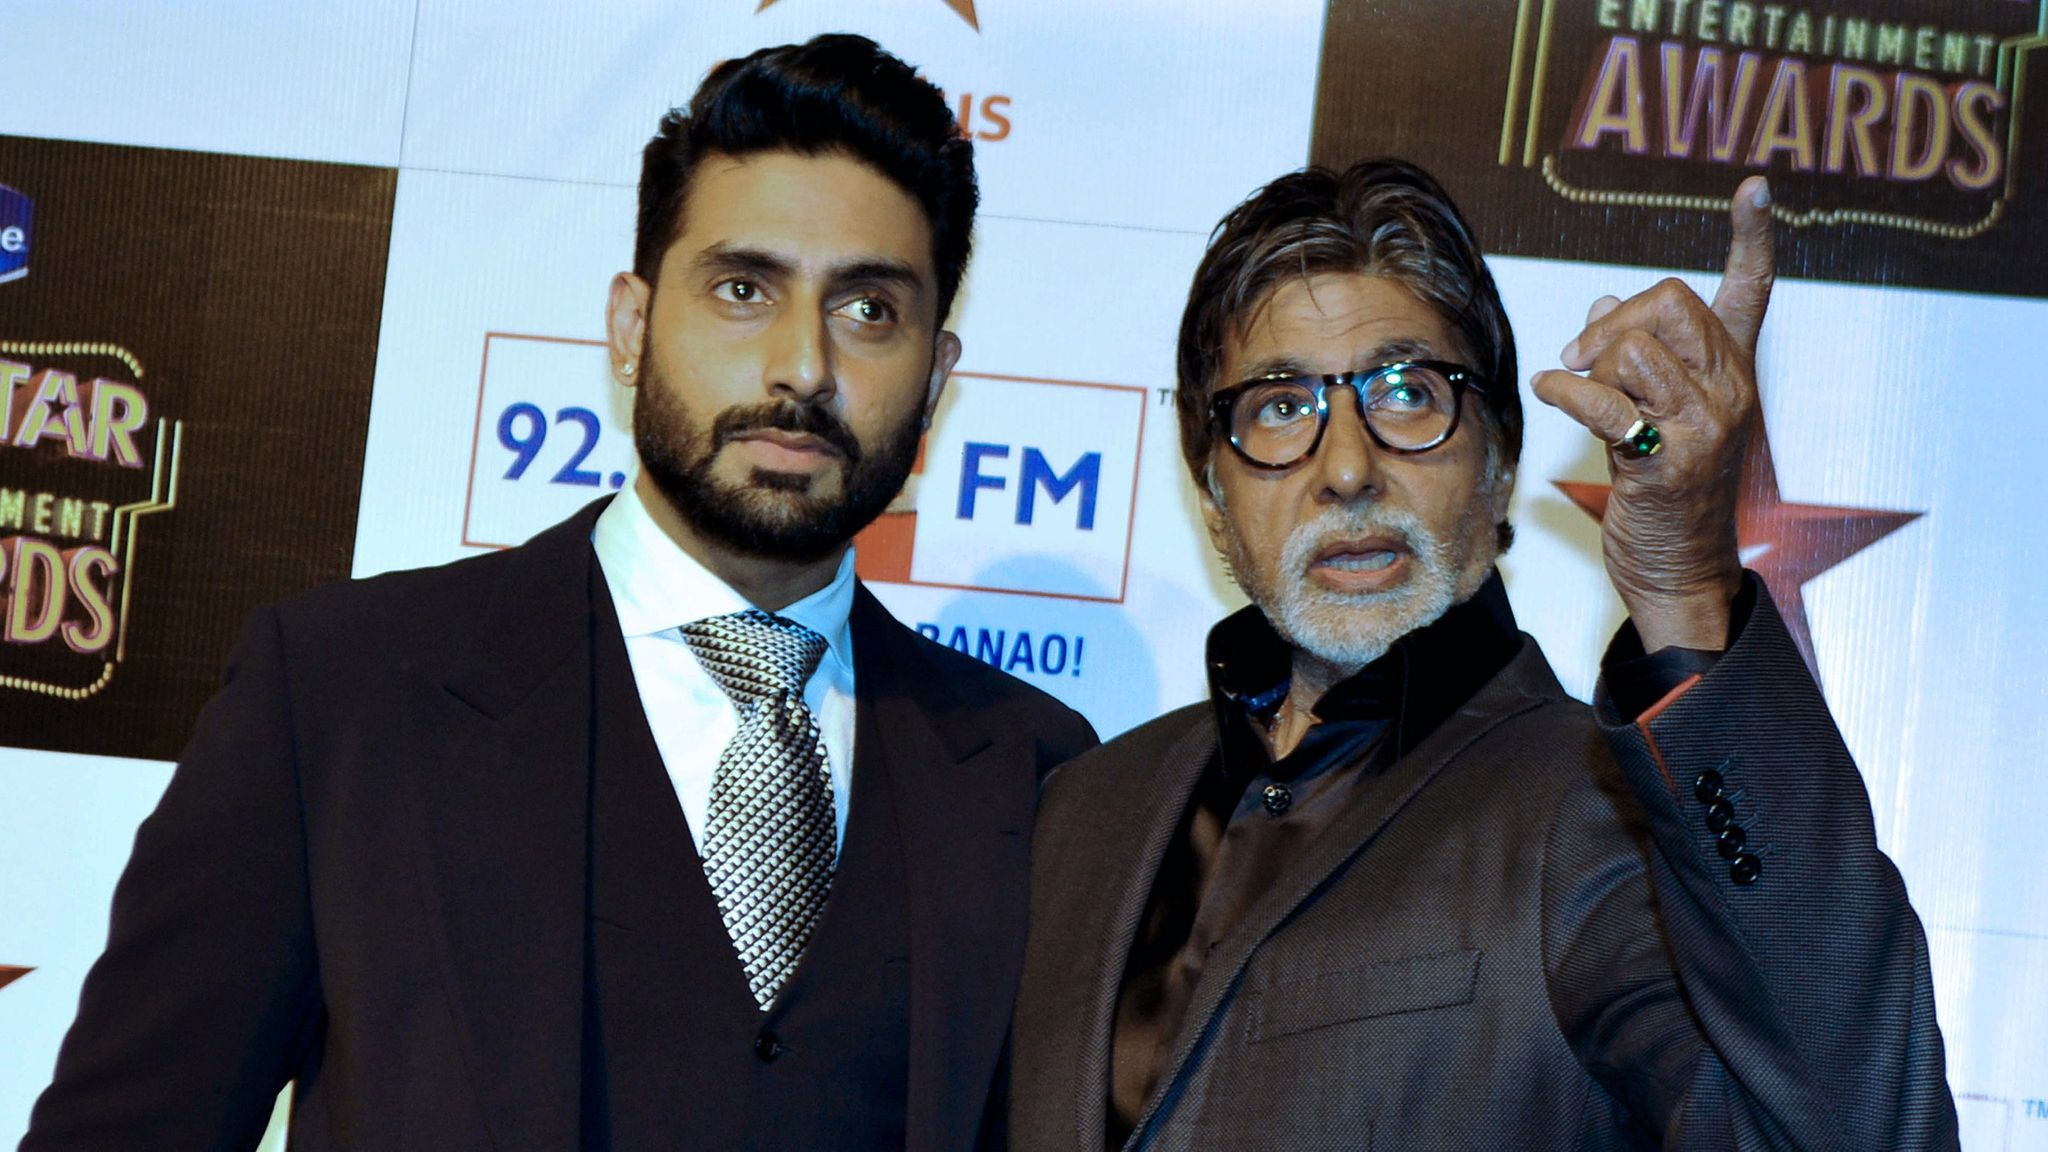 Amitabh's son Abhishek Bachchan (L) has also tested positive for COVID-19